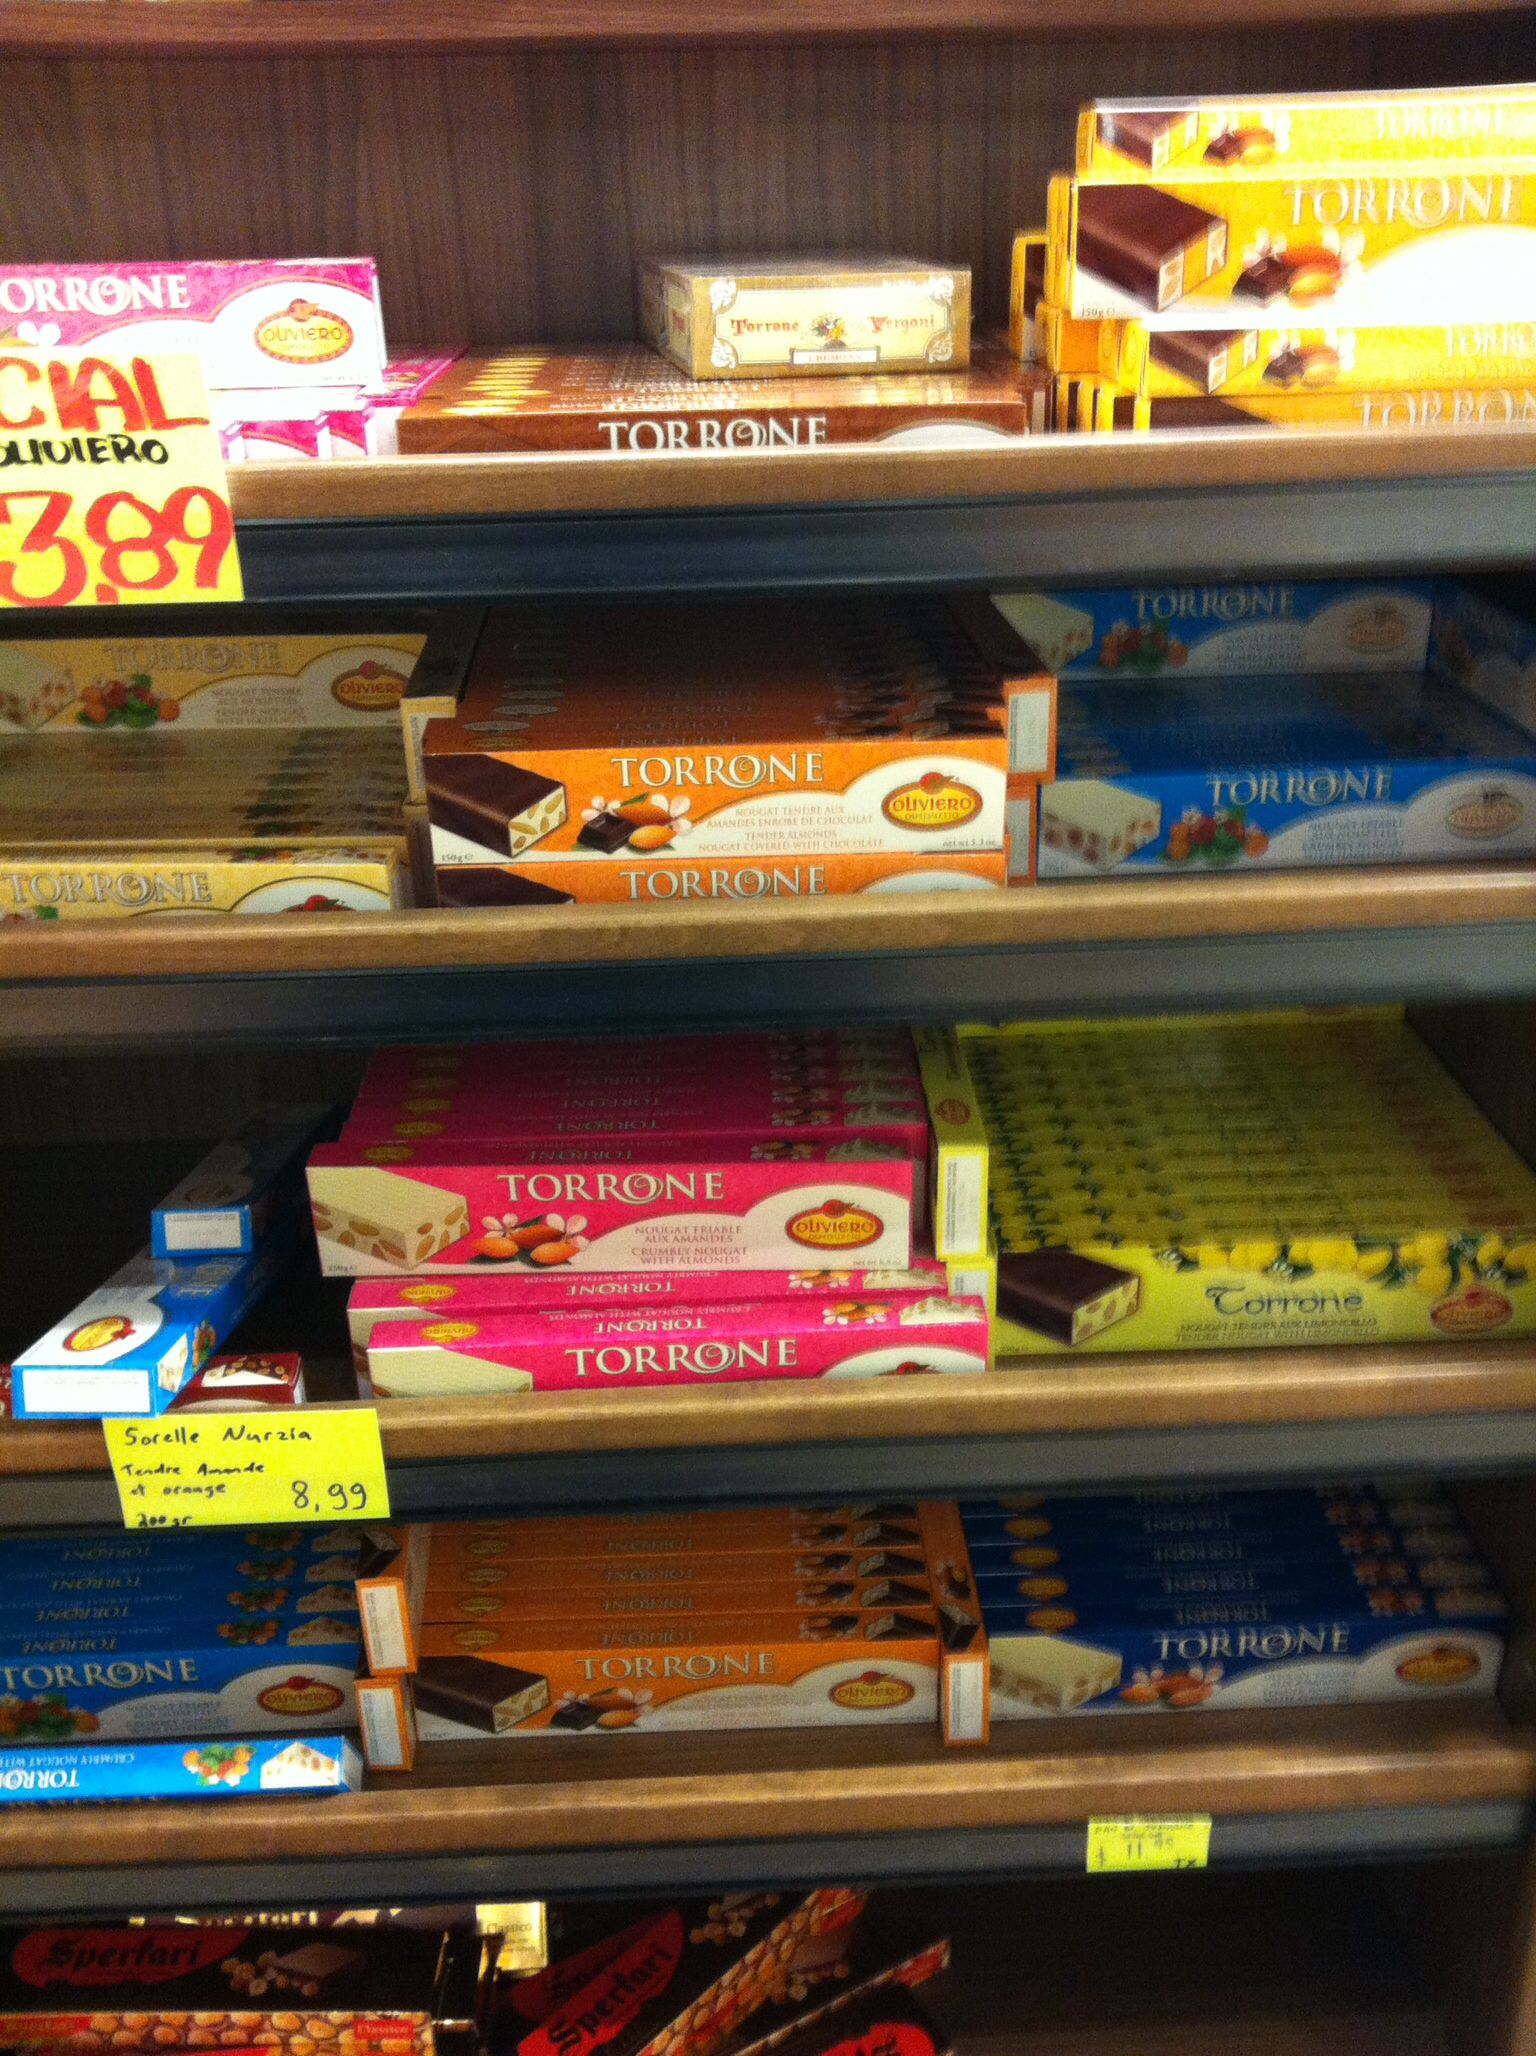 Torrone display at Milano in Little Italy, Montreal. I lose all sense of restraint at the sight of glorious nougat.